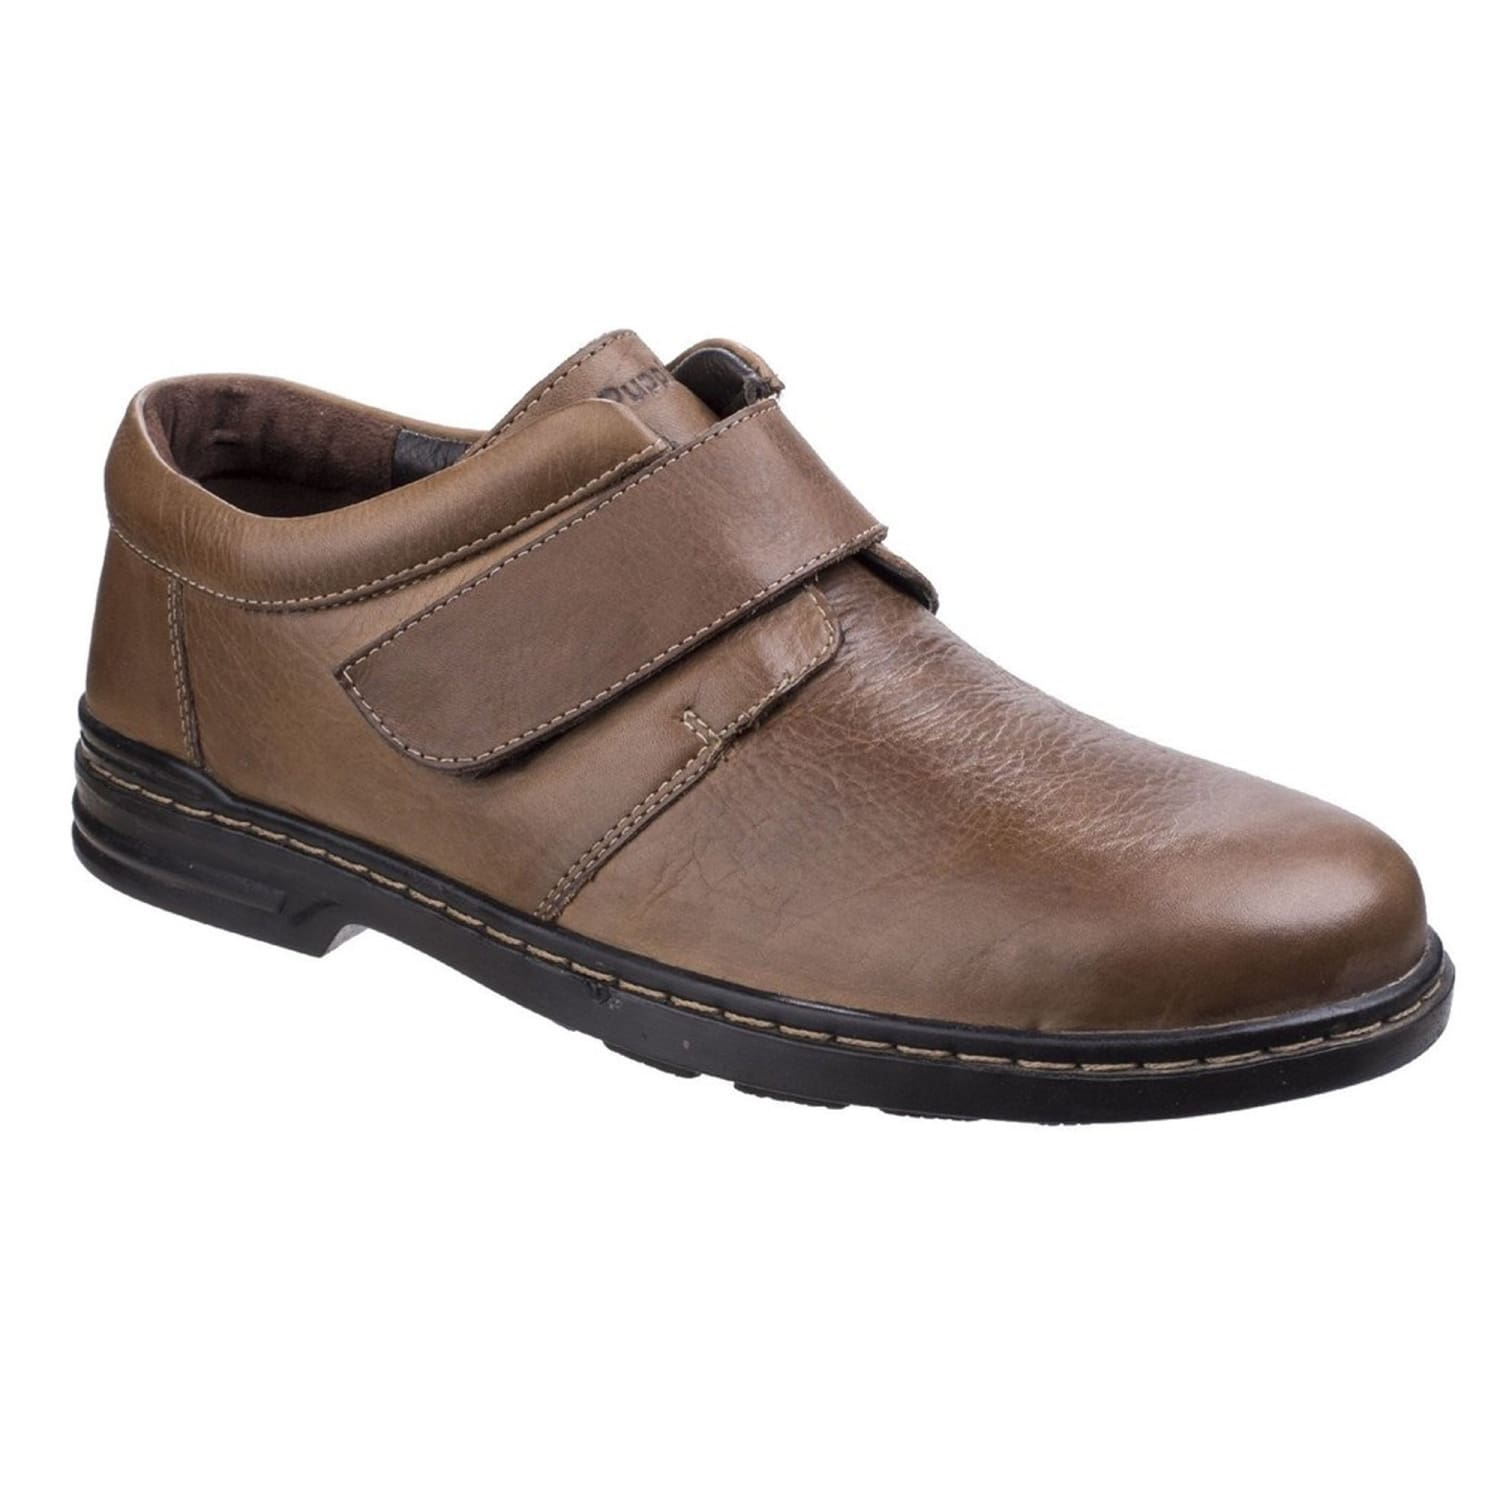 Hush Puppies Shoes - Jeremey - Brown 1